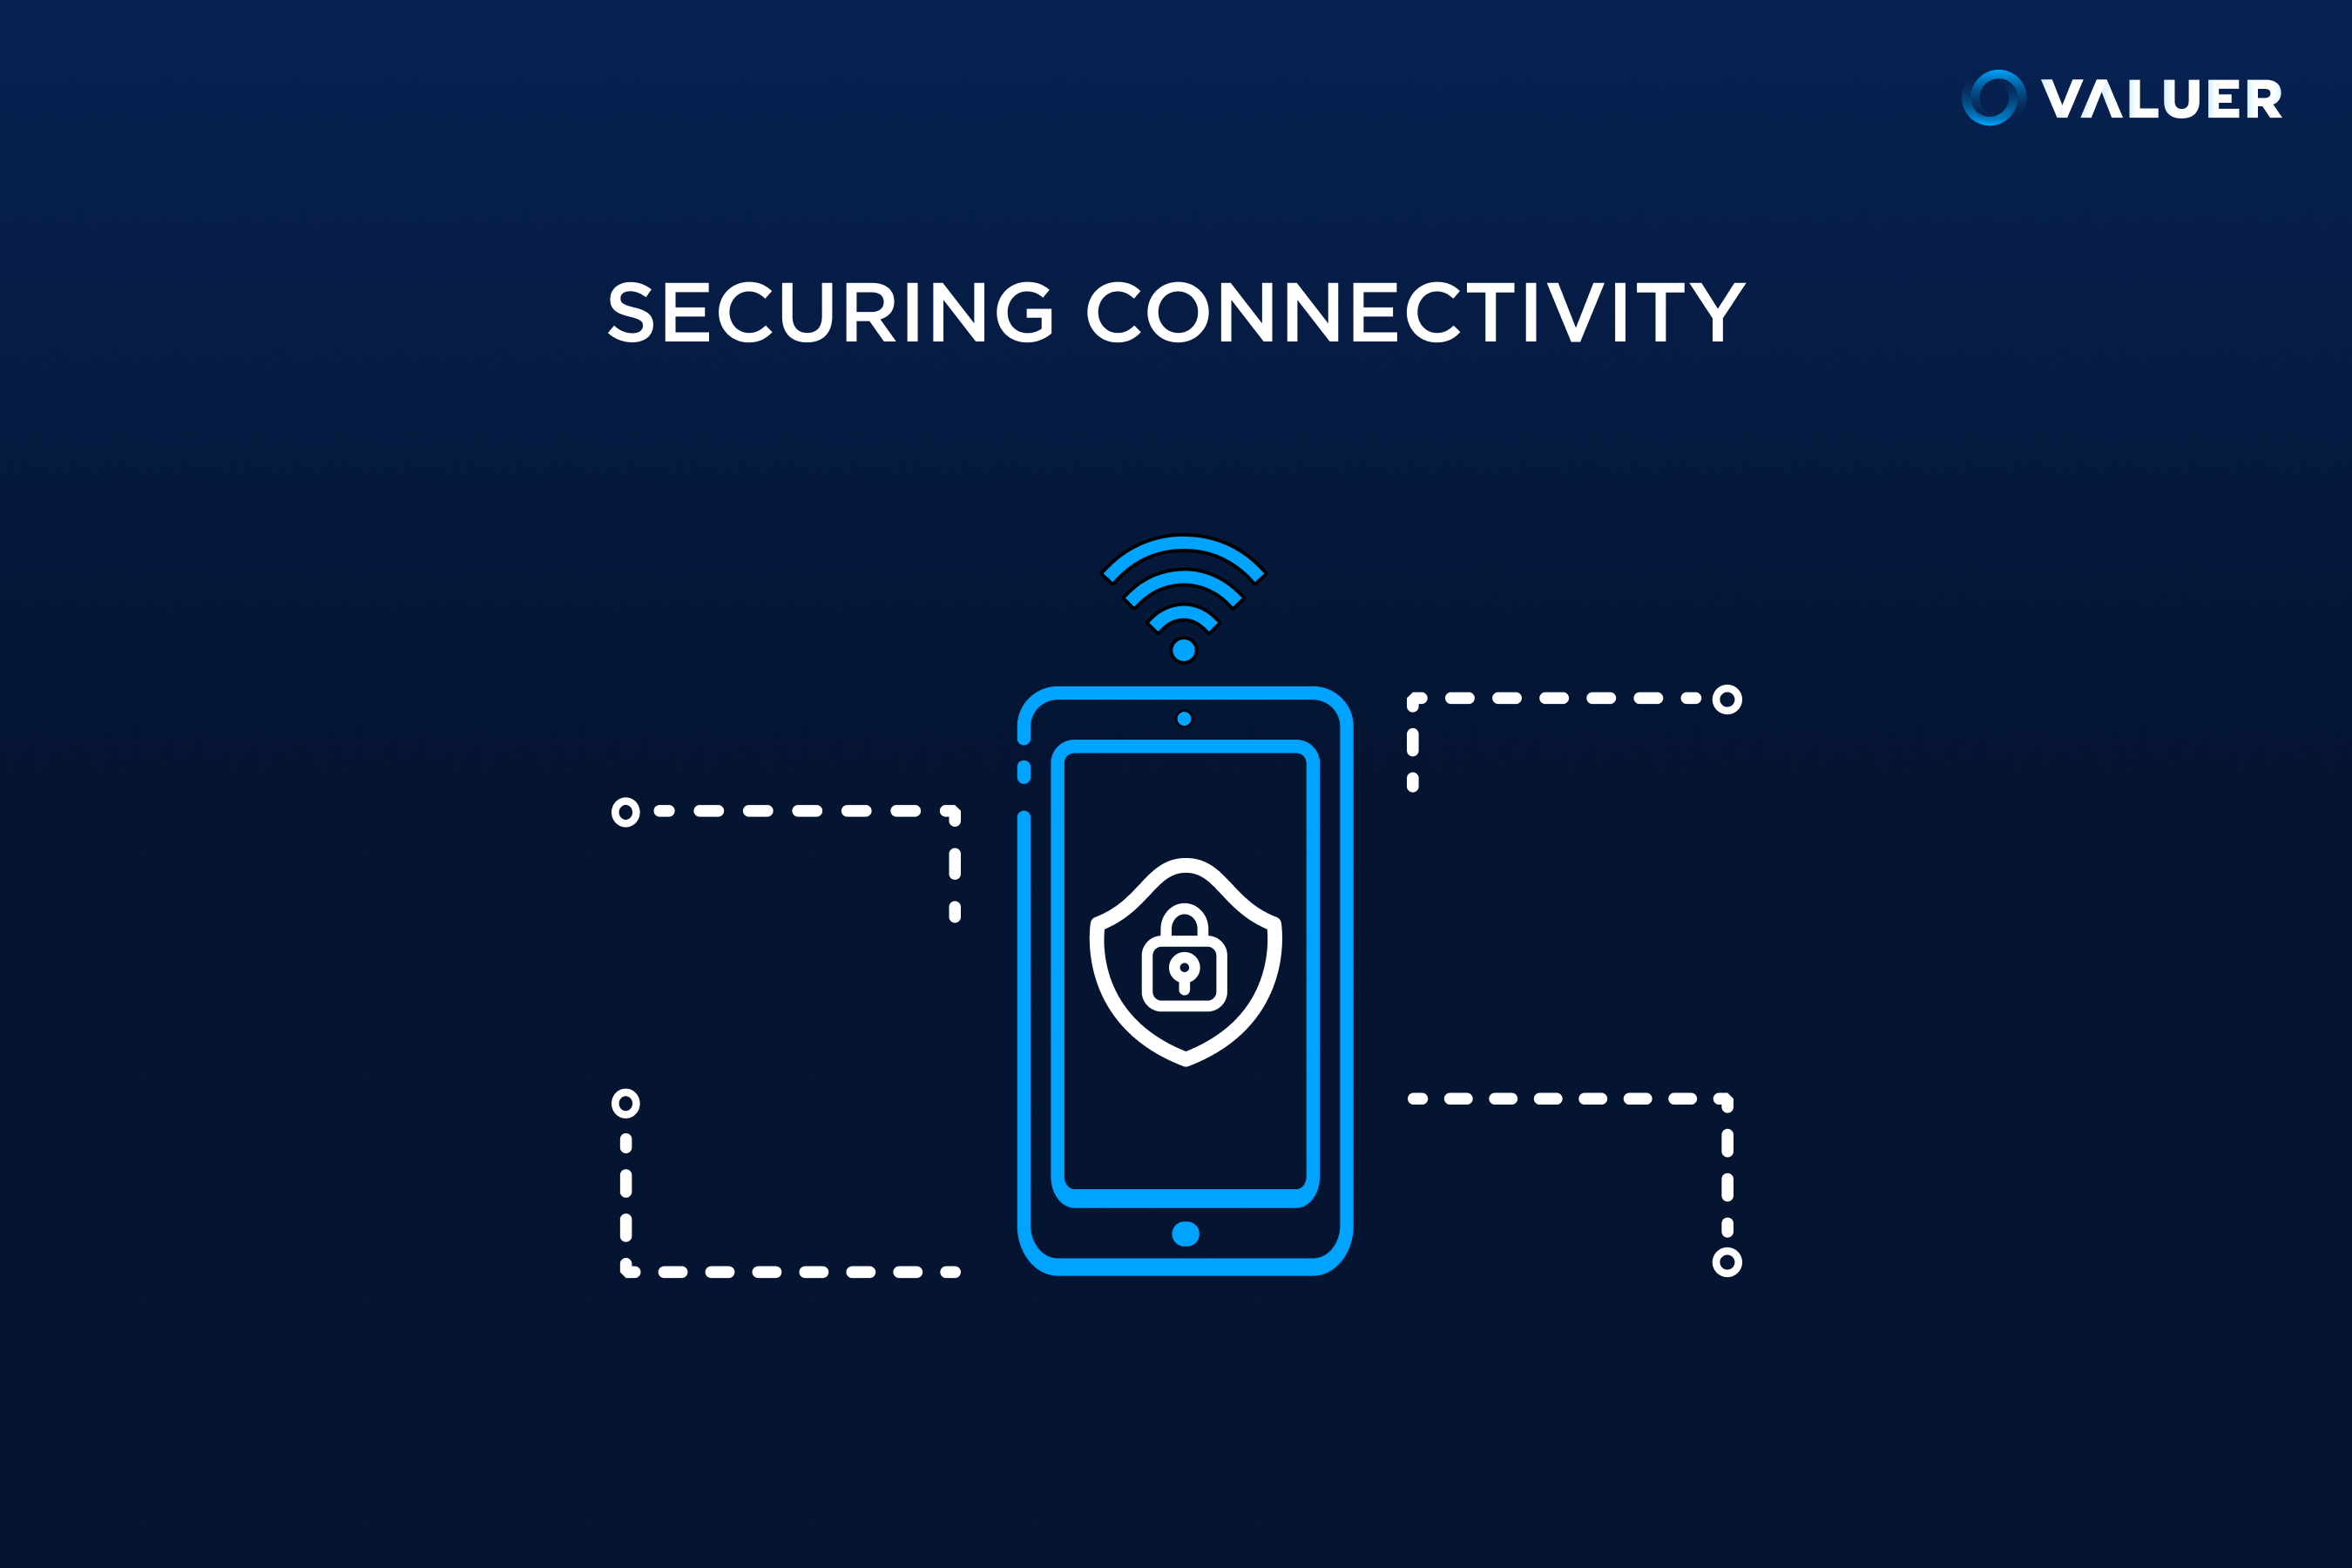 securing connectivity image